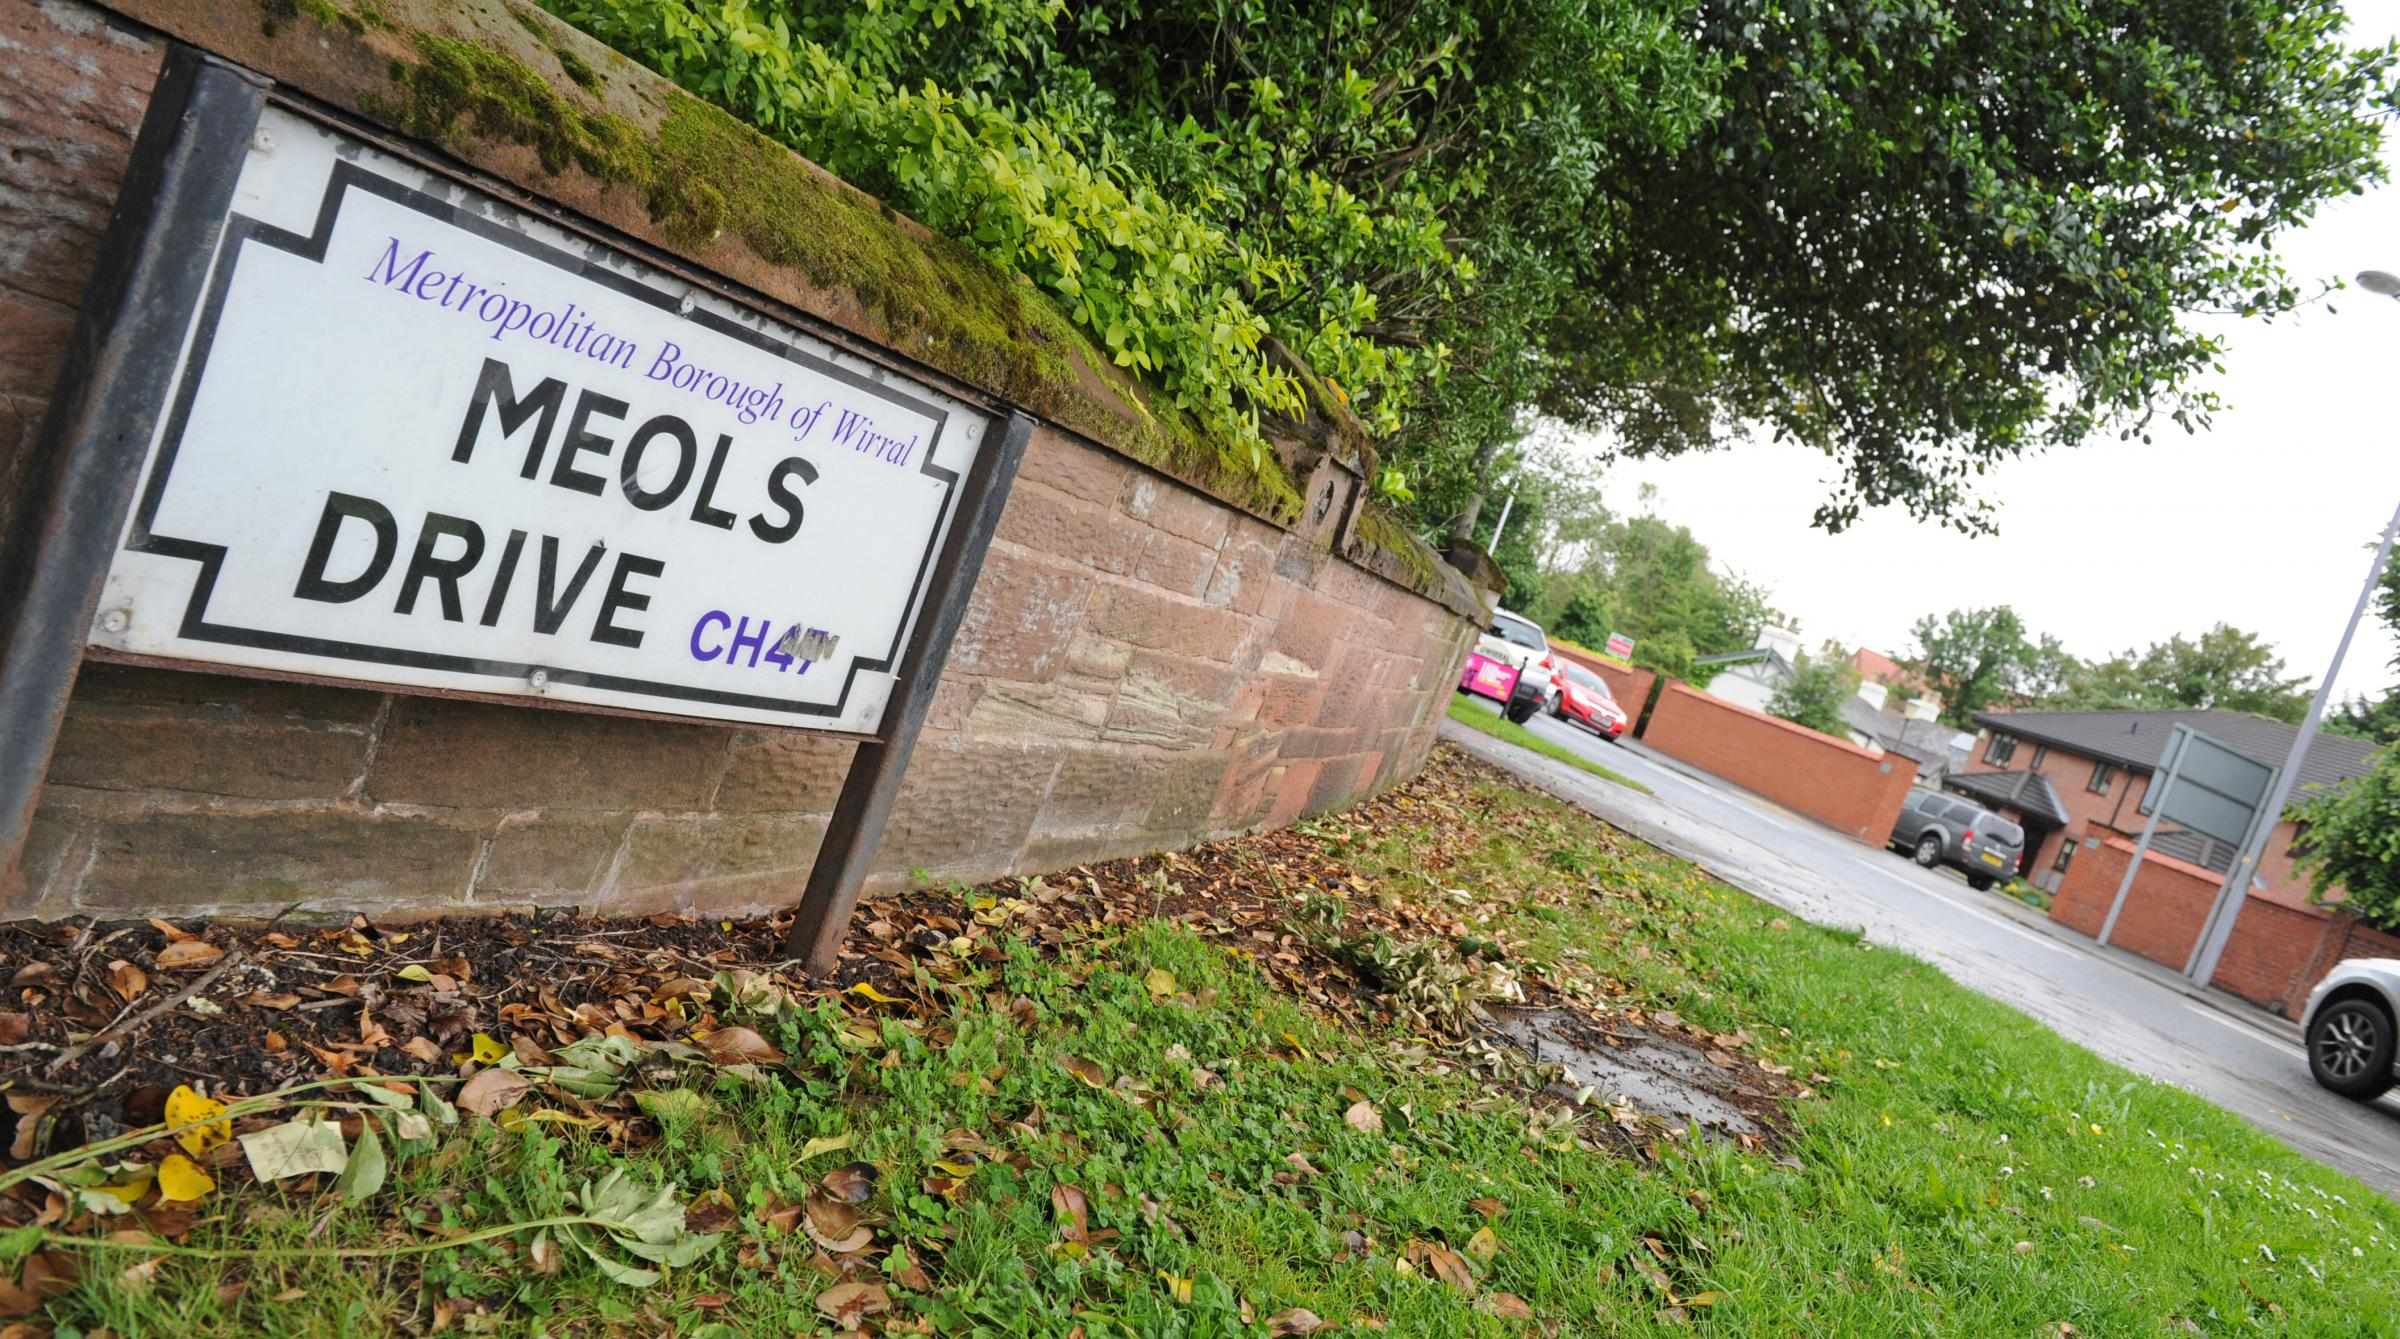 Councillors raise concerns over new Meols Drive care home